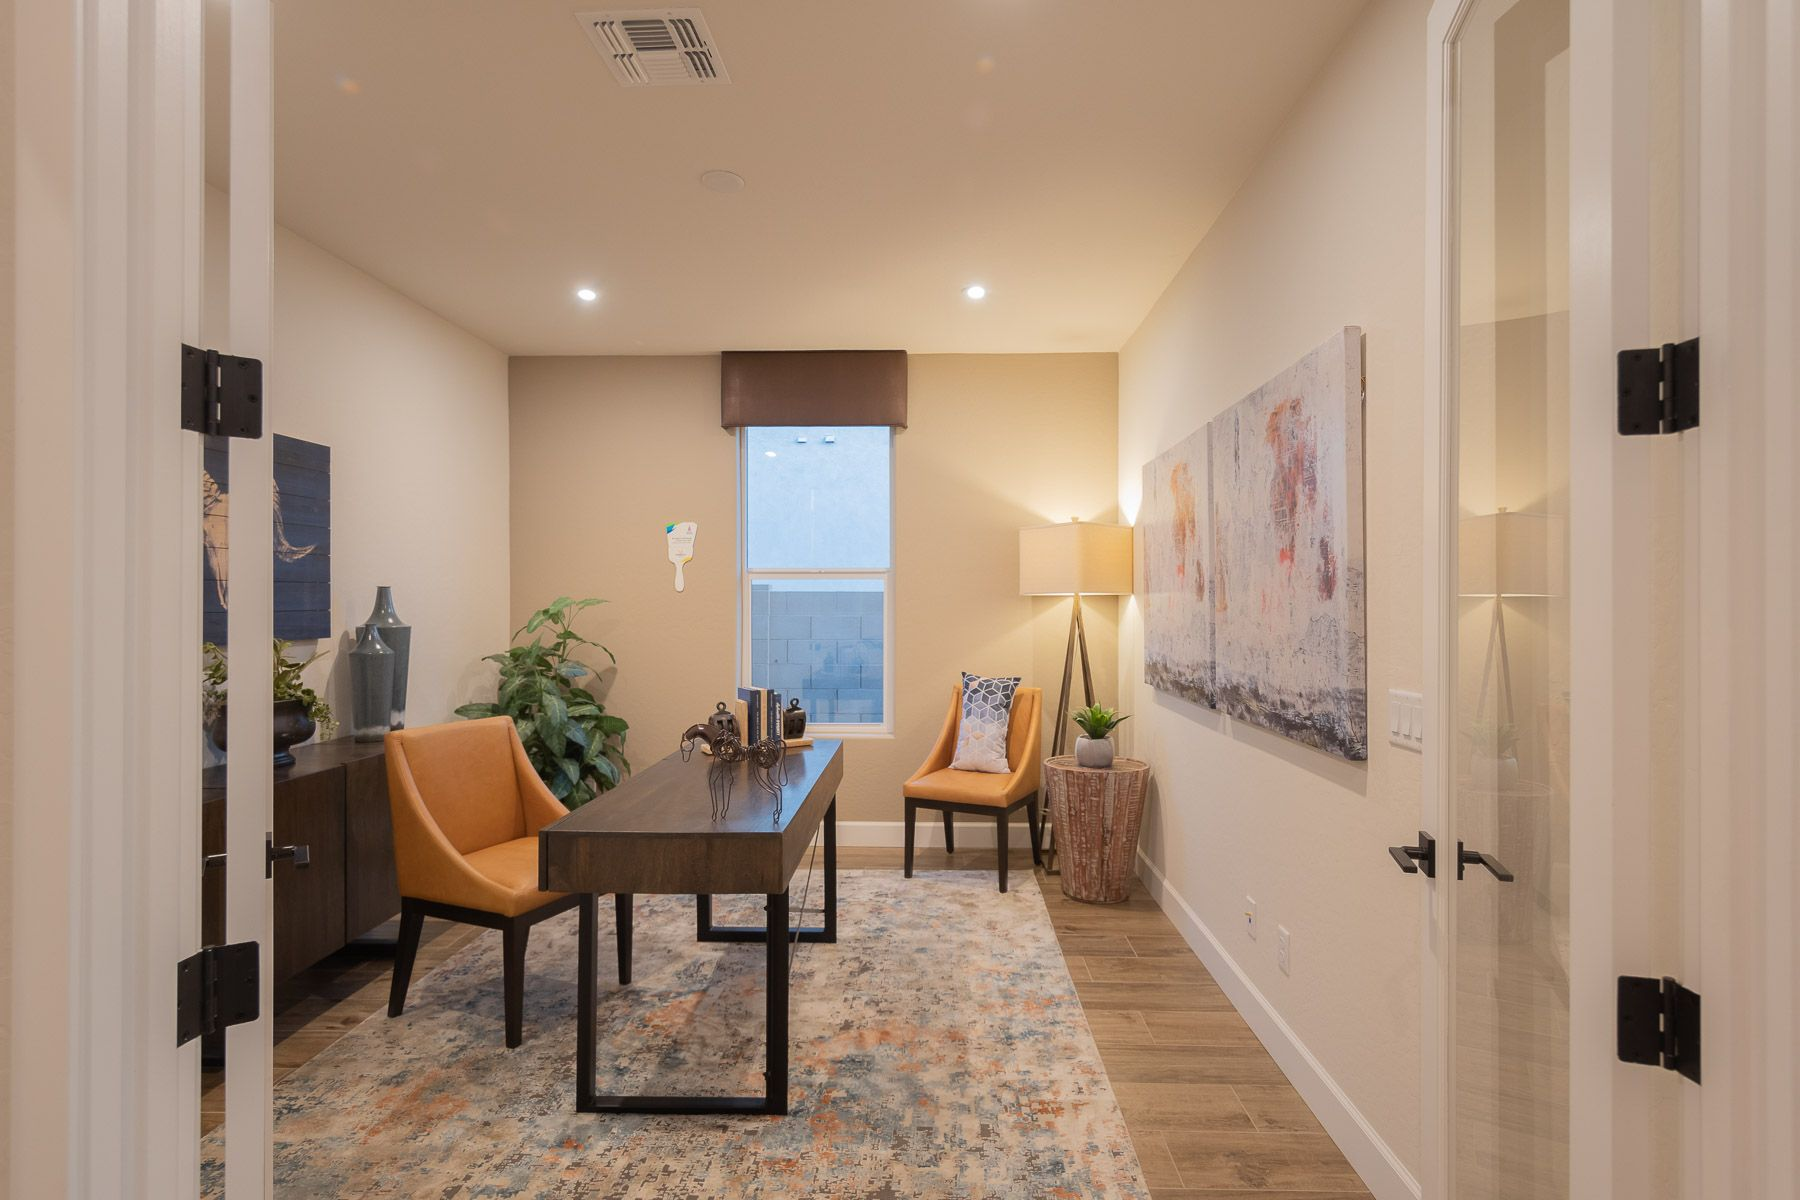 Living Area featured in the Morning Sky at Foothills By Mandalay Homes in Prescott, AZ